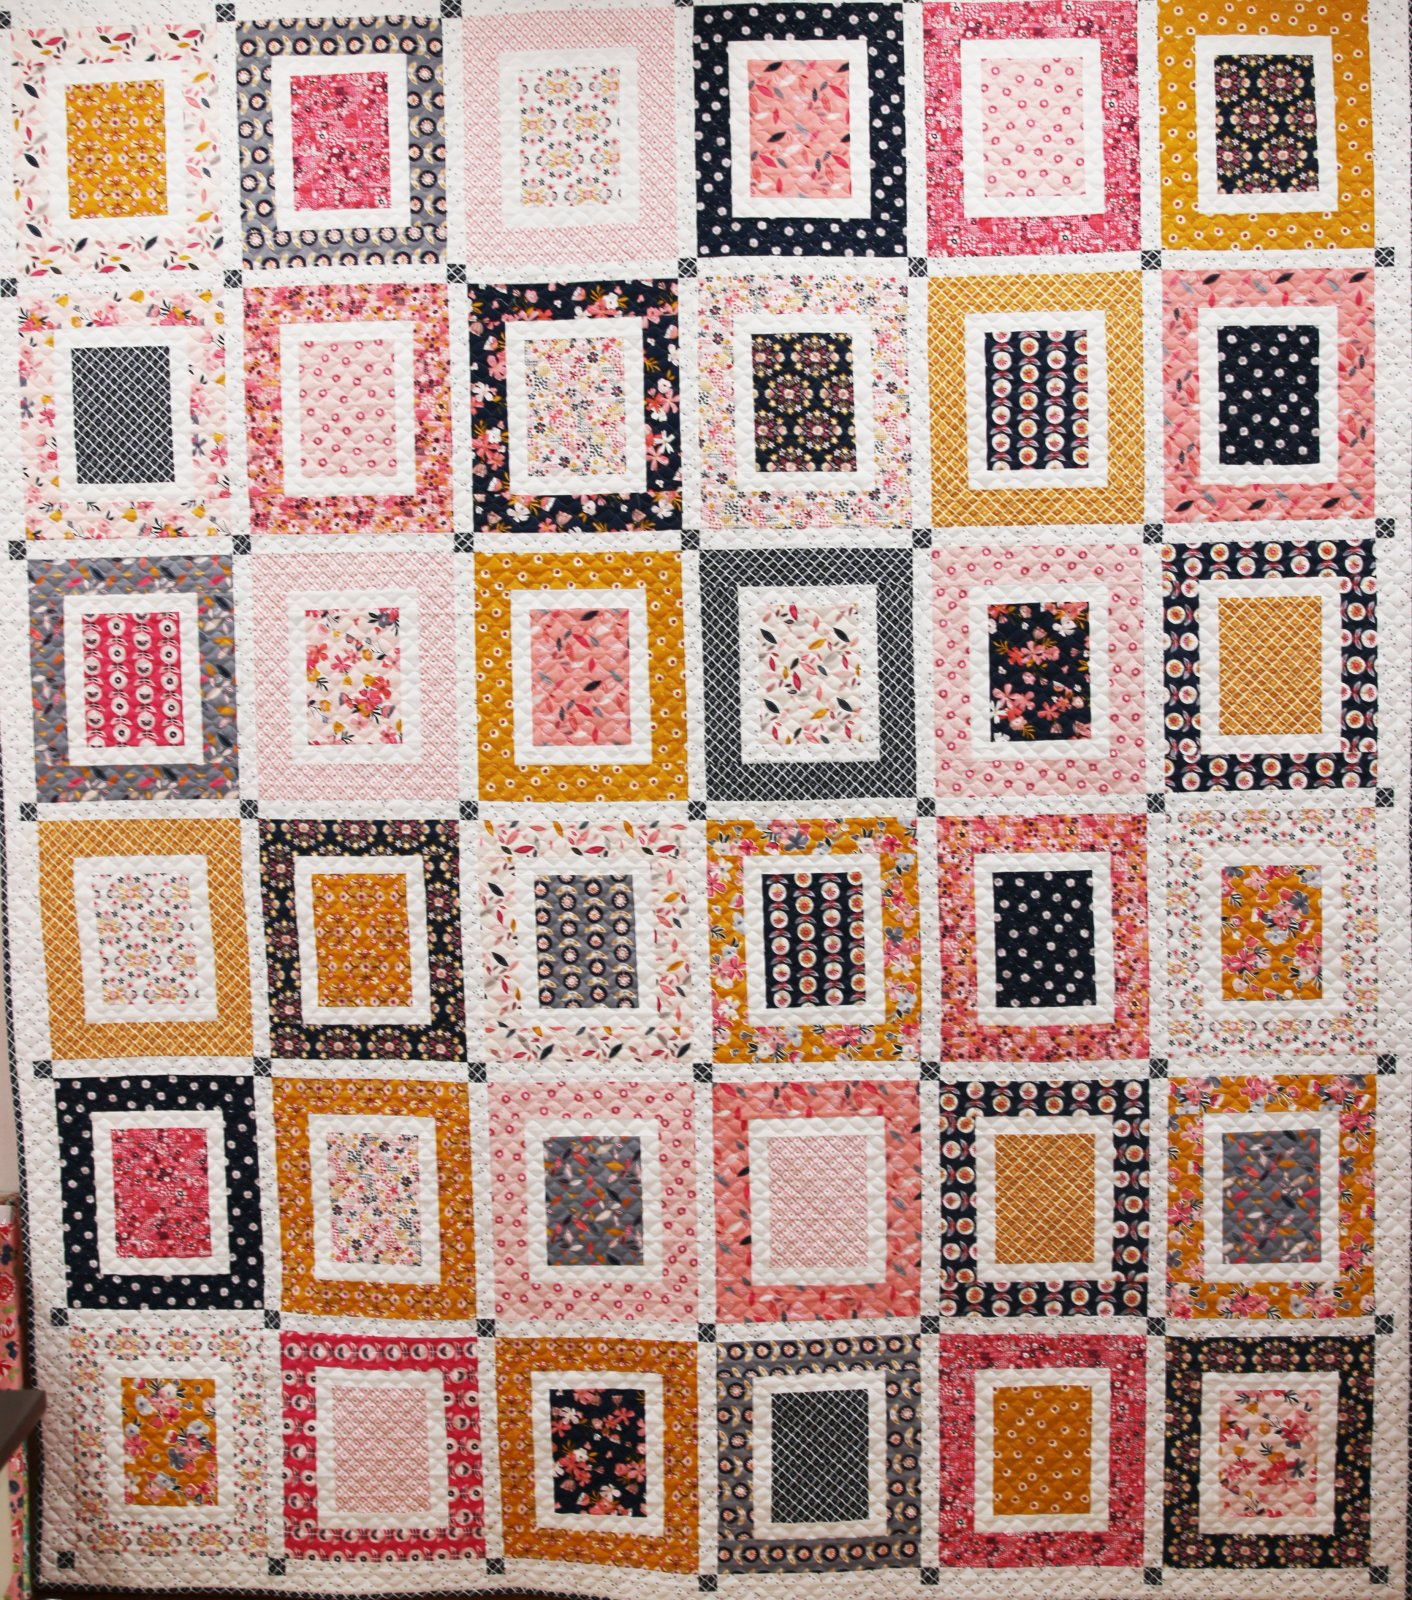 Front & Center Quilt Kit featuring Aria & Ava Patterns